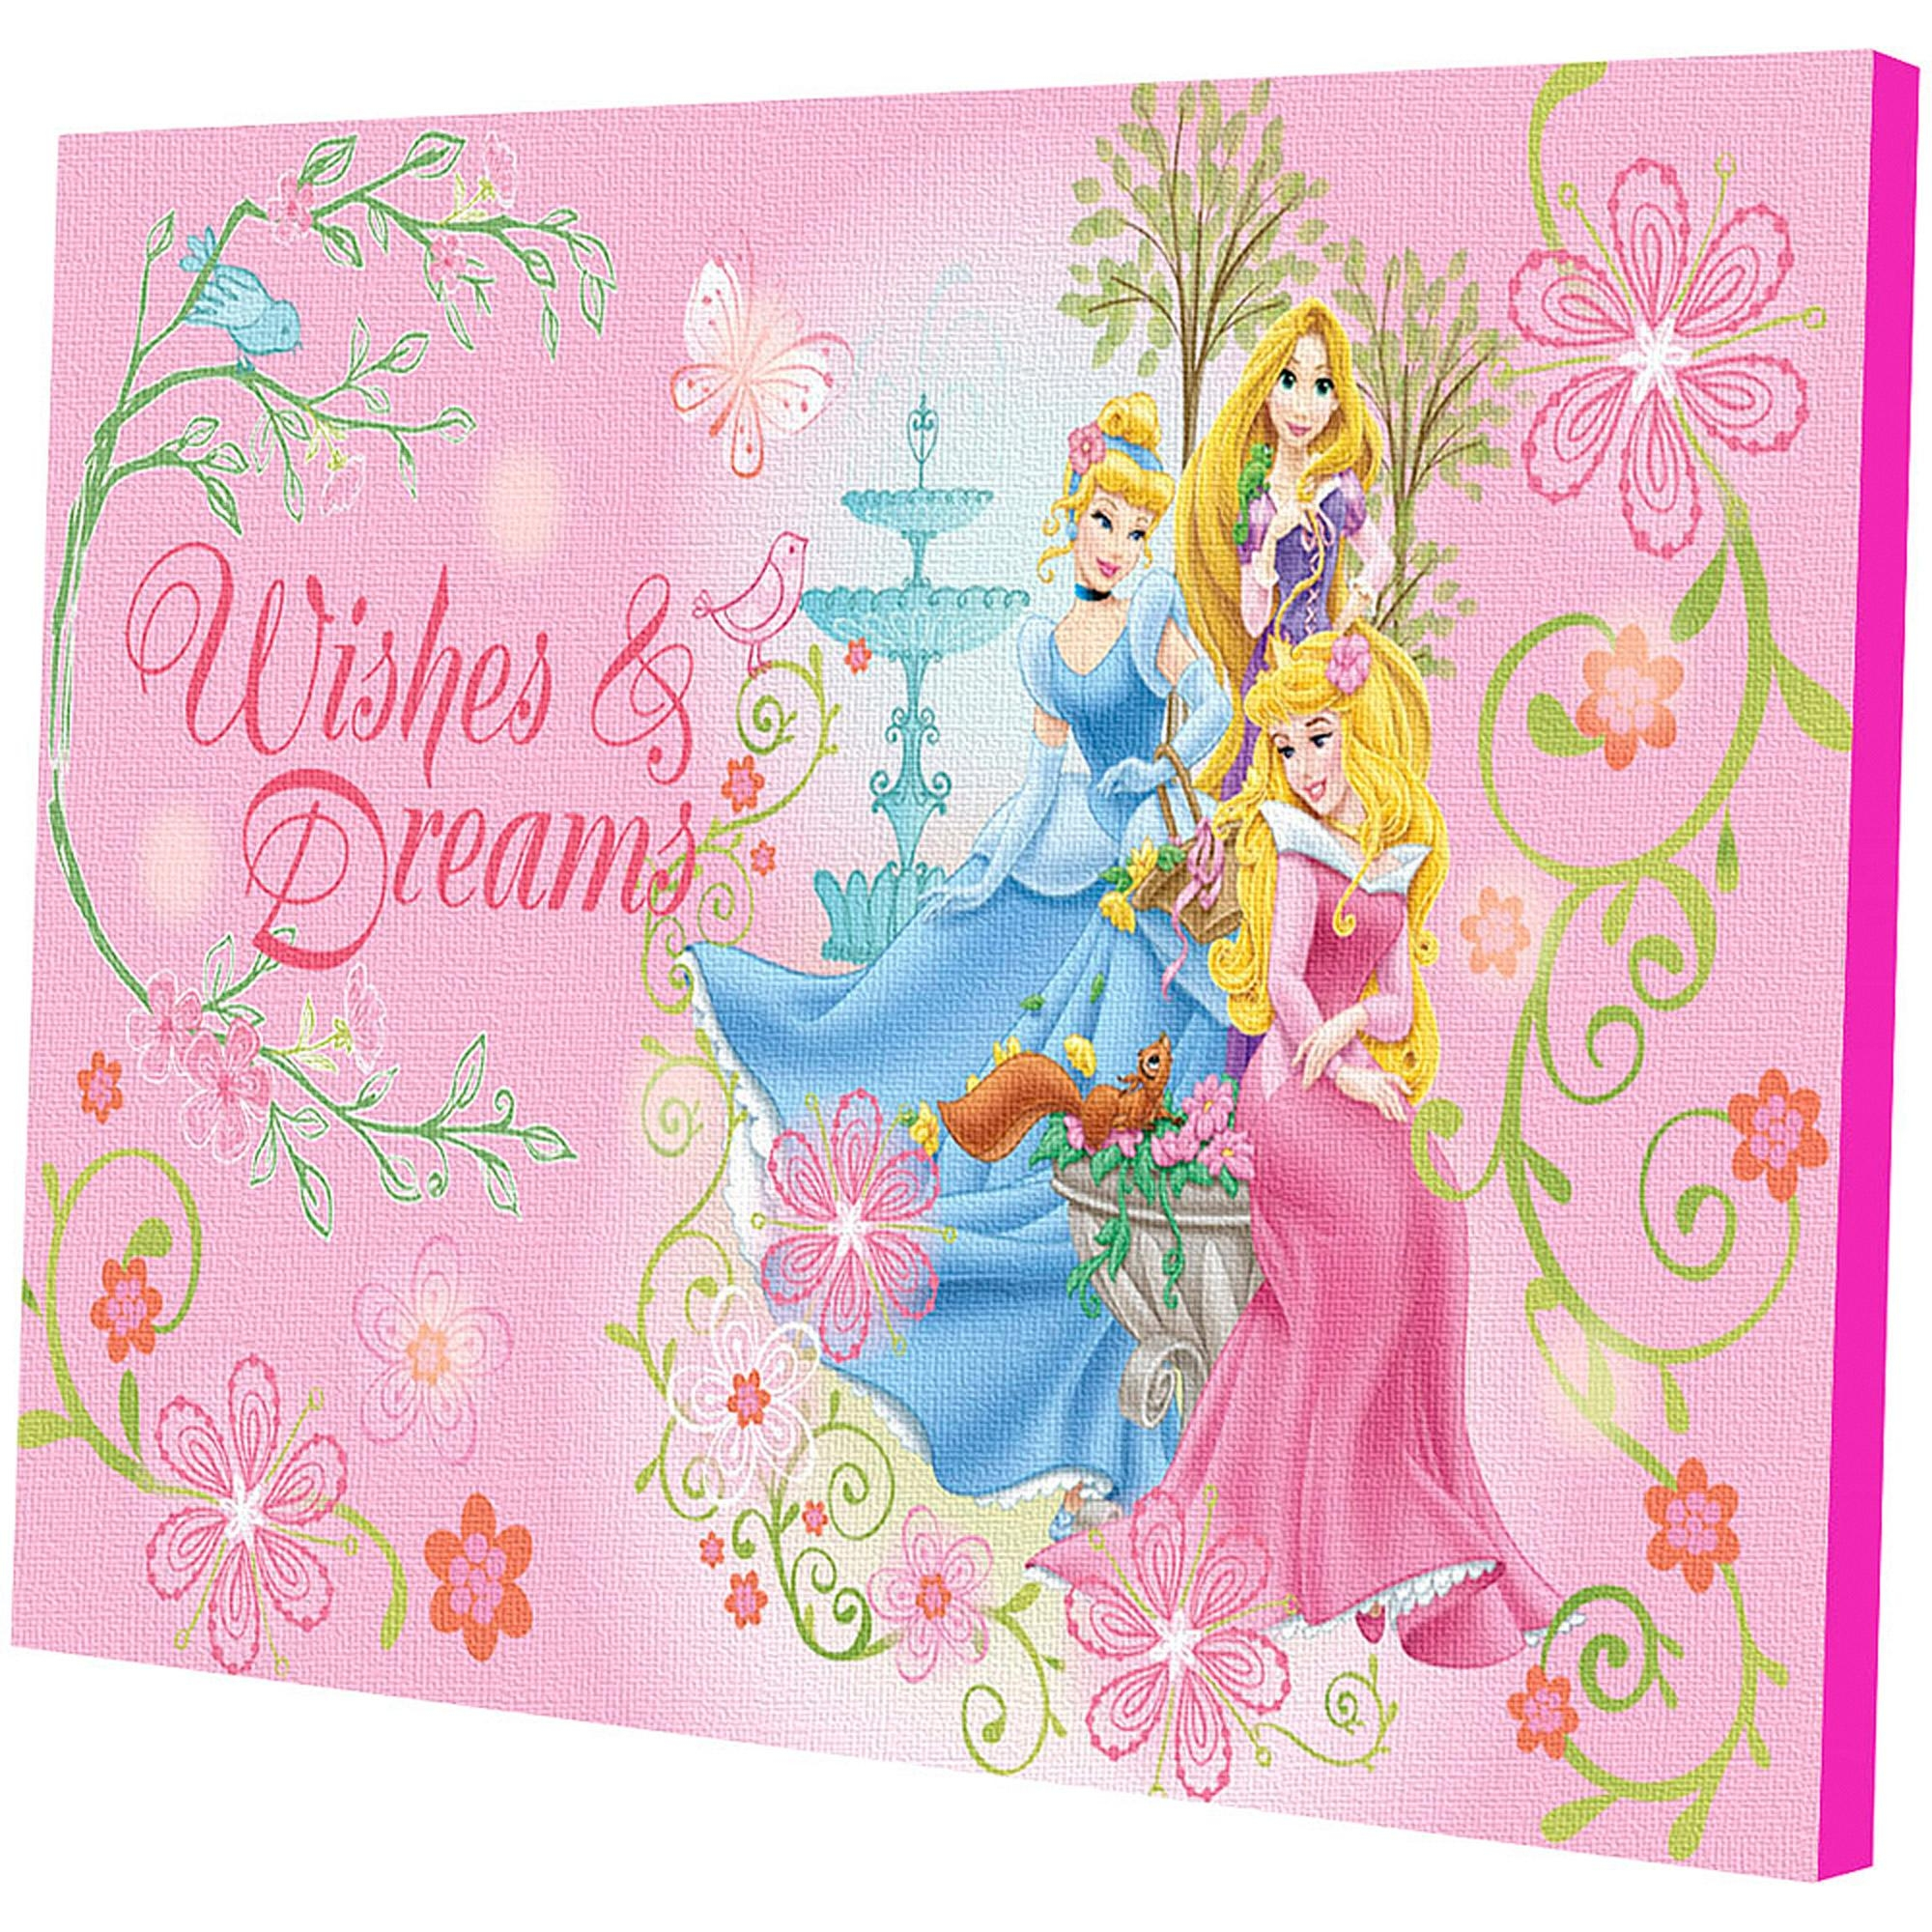 Disney Princess Led Light Up Canvas Wall Art – Walmart With Regard To Girls Canvas Wall Art (View 10 of 20)